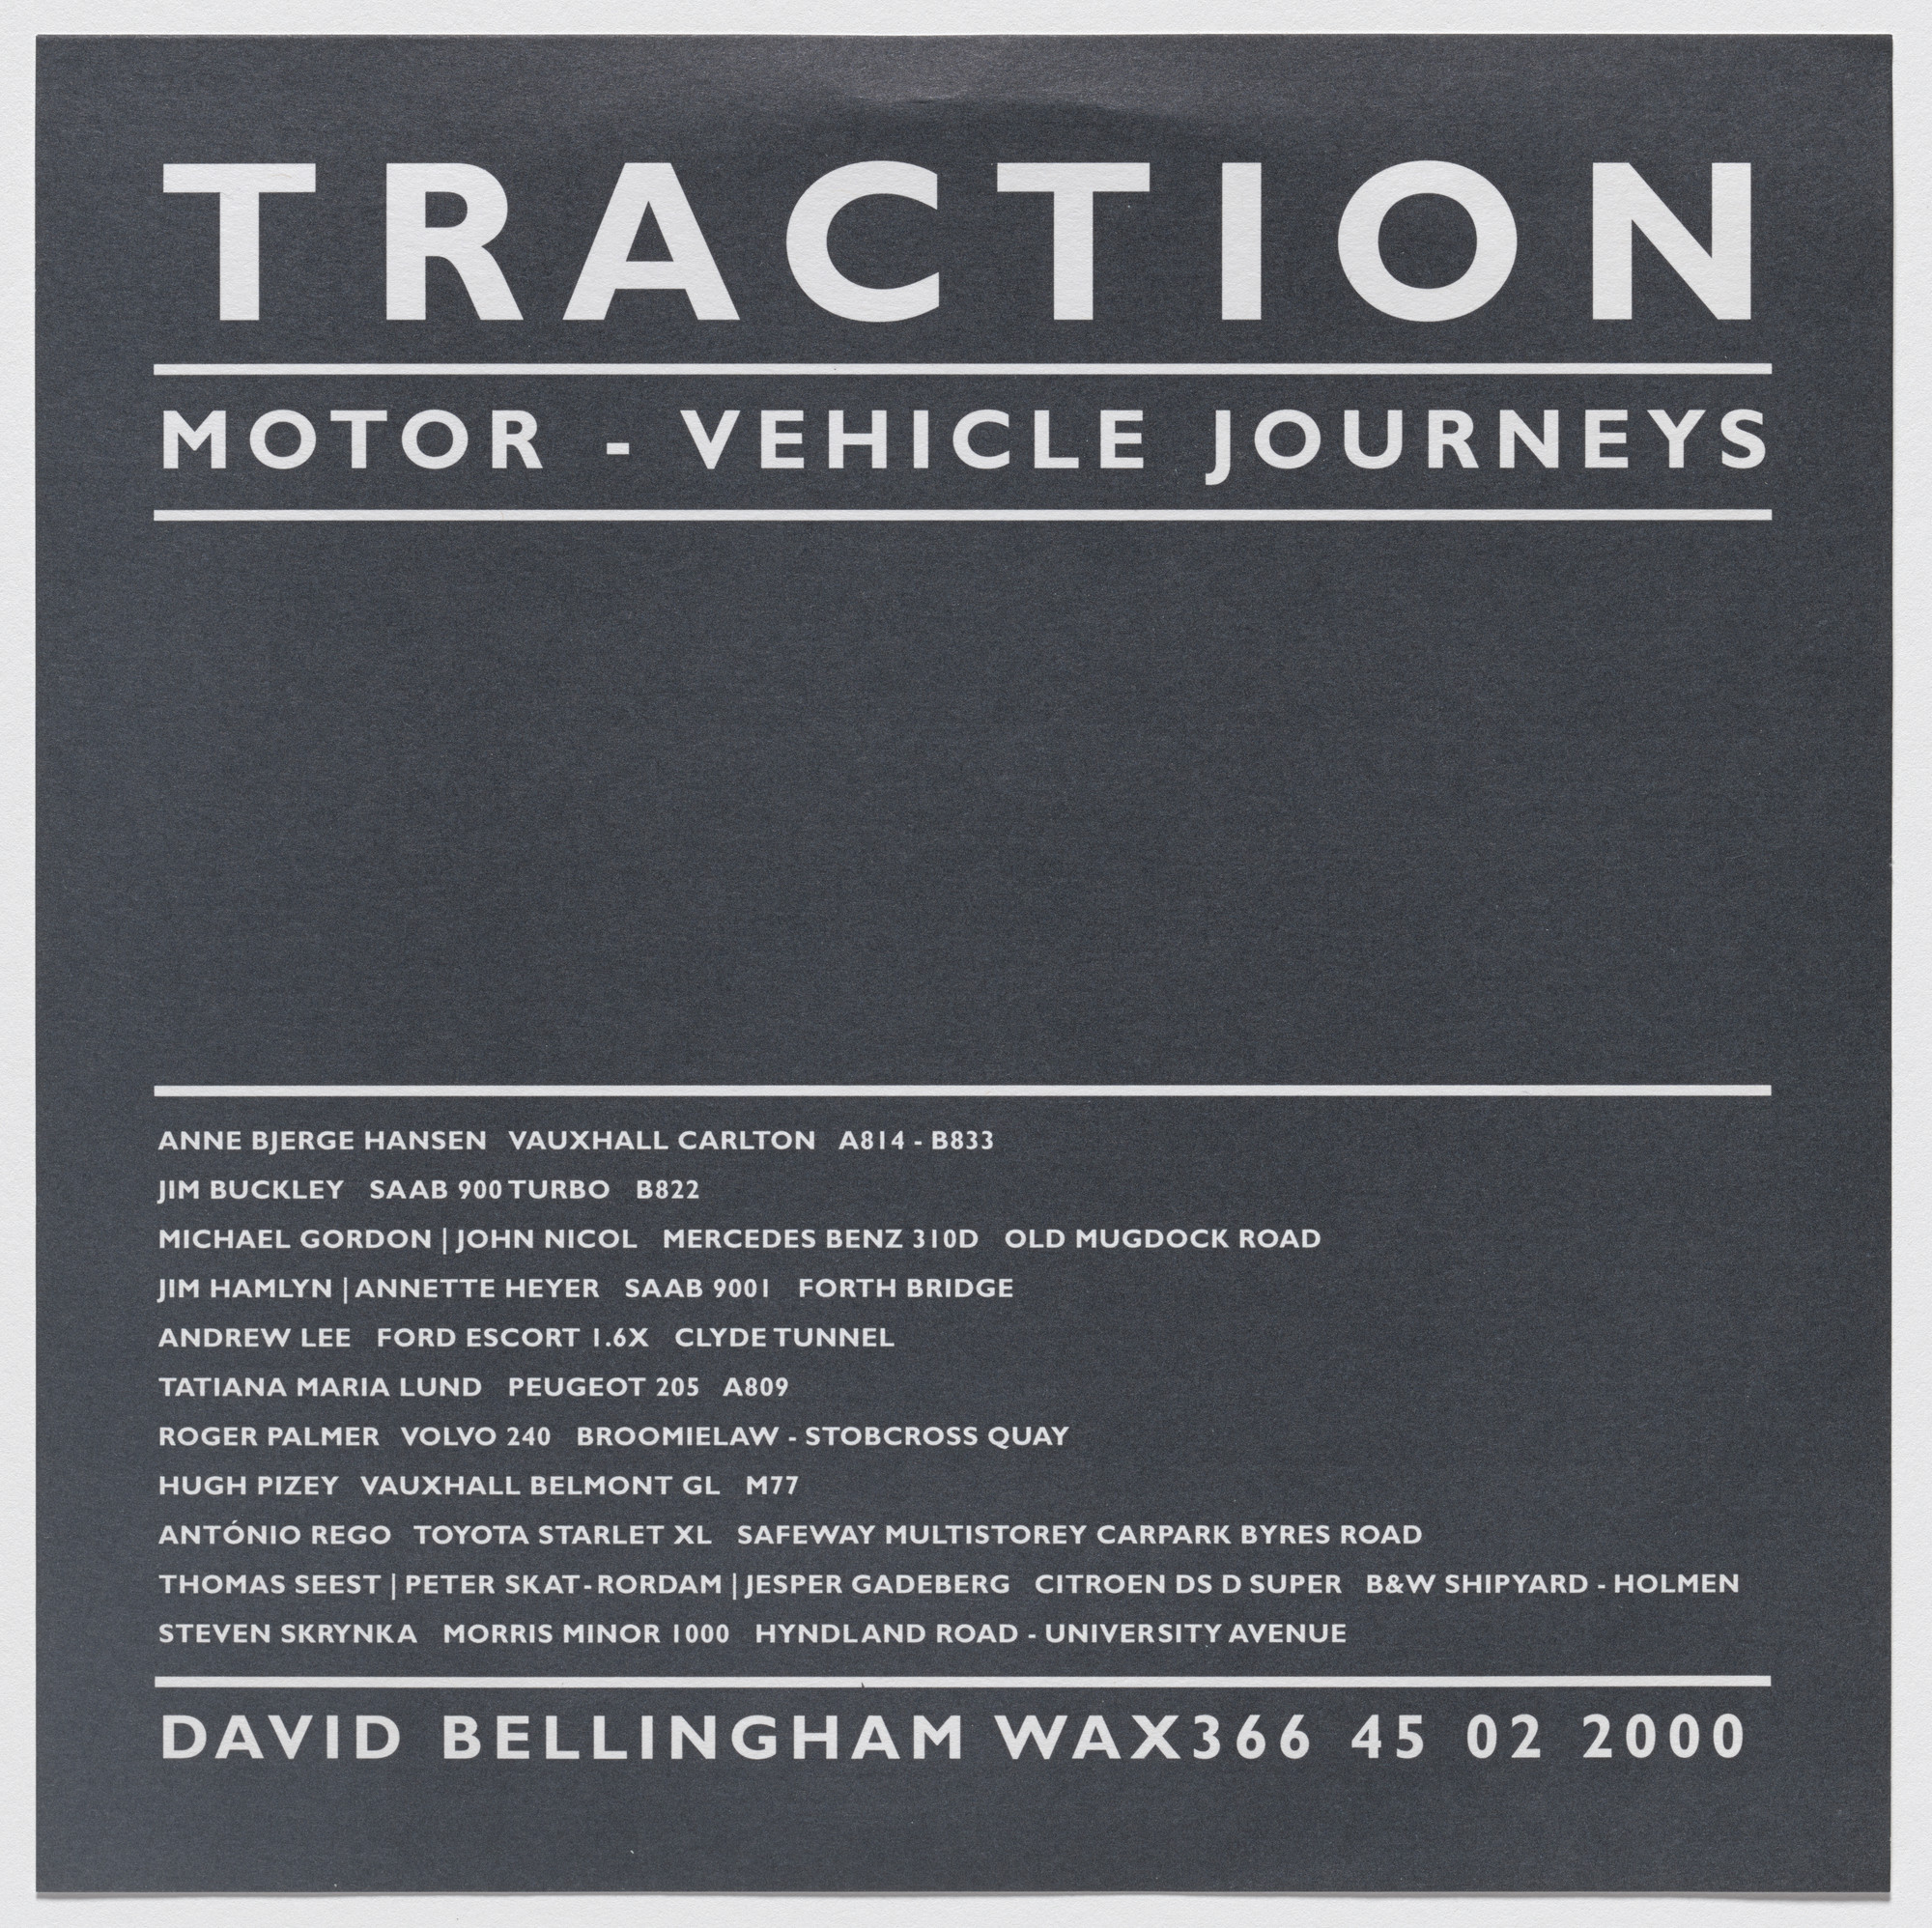 David Bellingham. Traction (Motor Vehicle Journeys). 2000